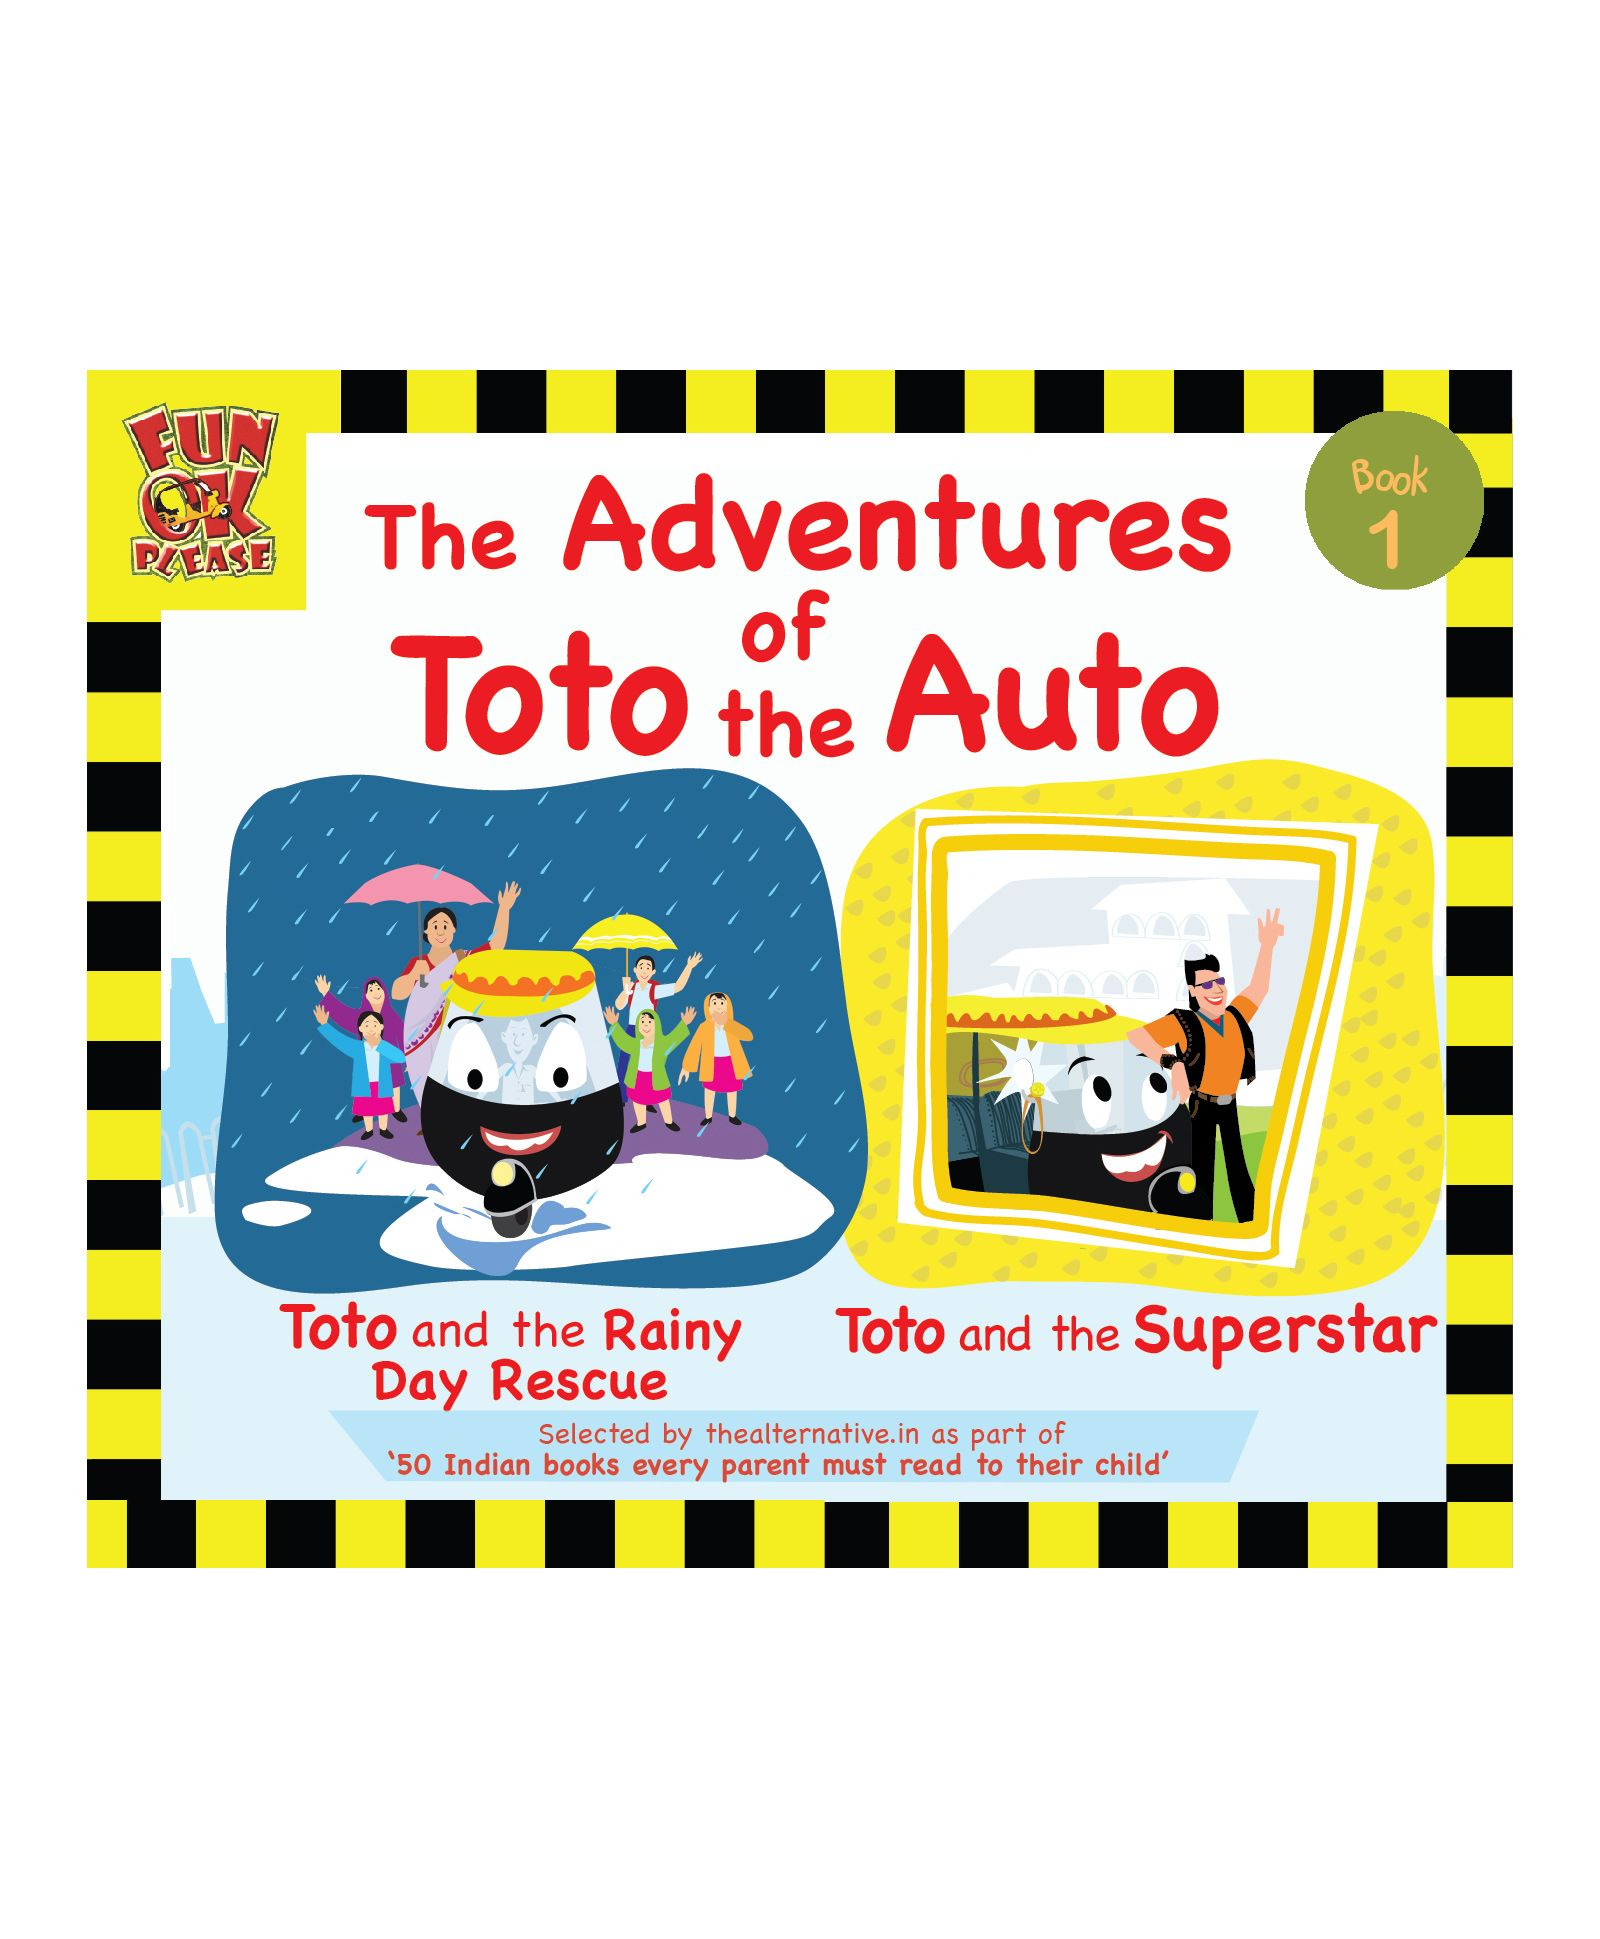 Adventures of Toto the Auto Story Book 1 by Ruta Vyas & Preeti Vyas ...